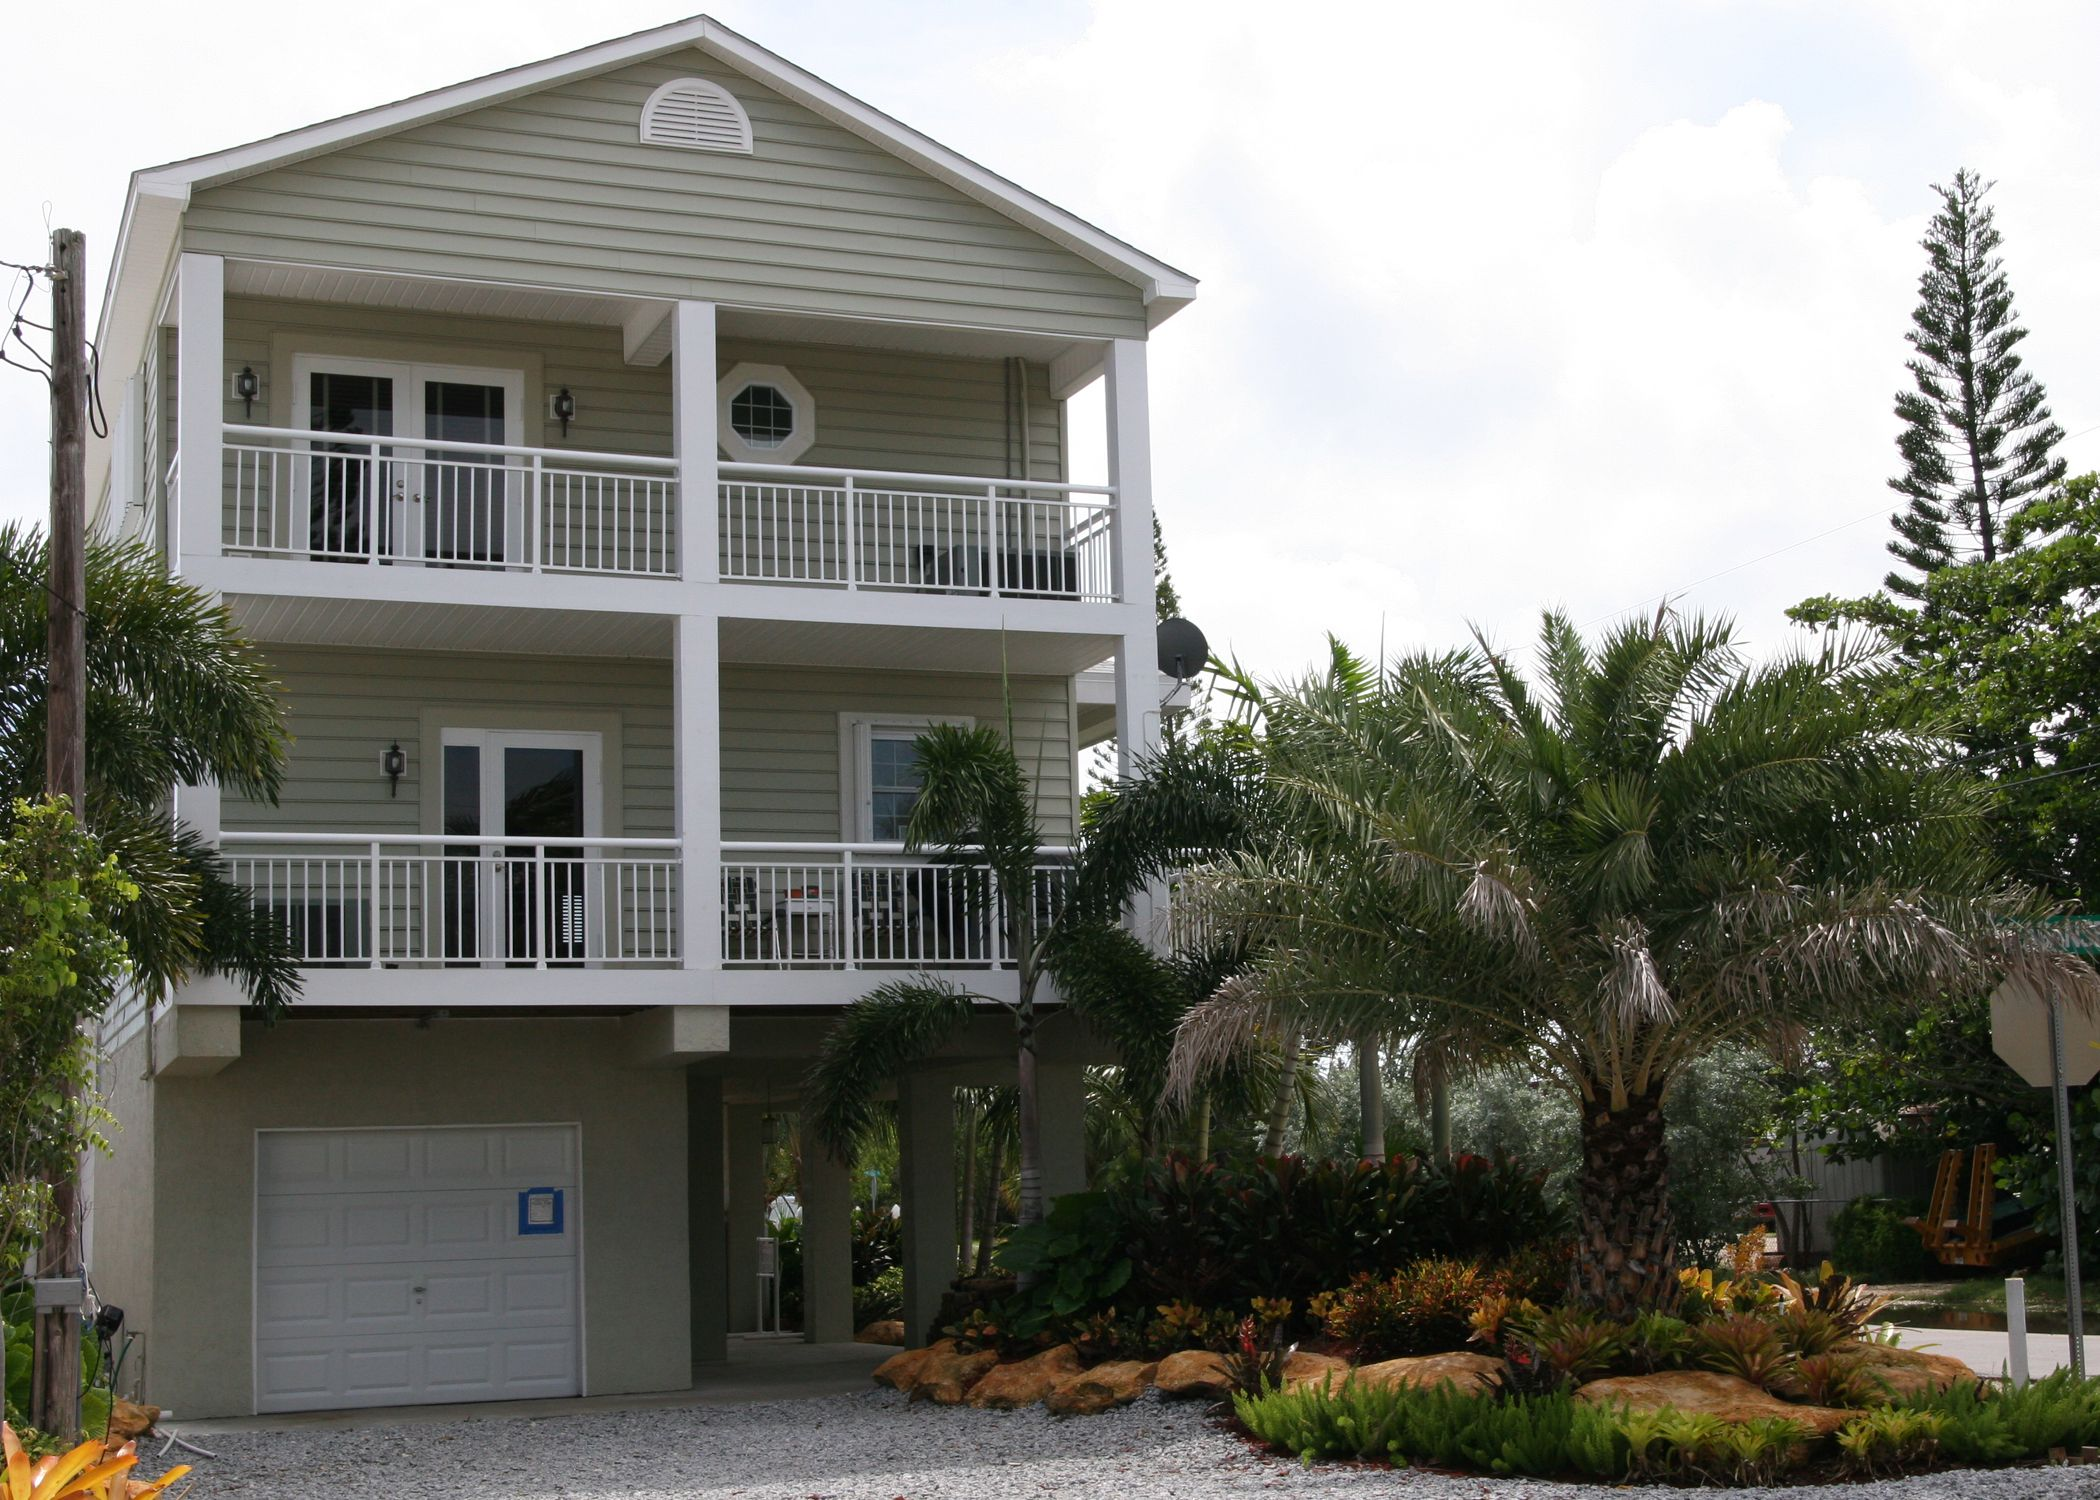 Two Story Coastal Modular Home Design In The Florida Keys Built By  Nationwide Homes.